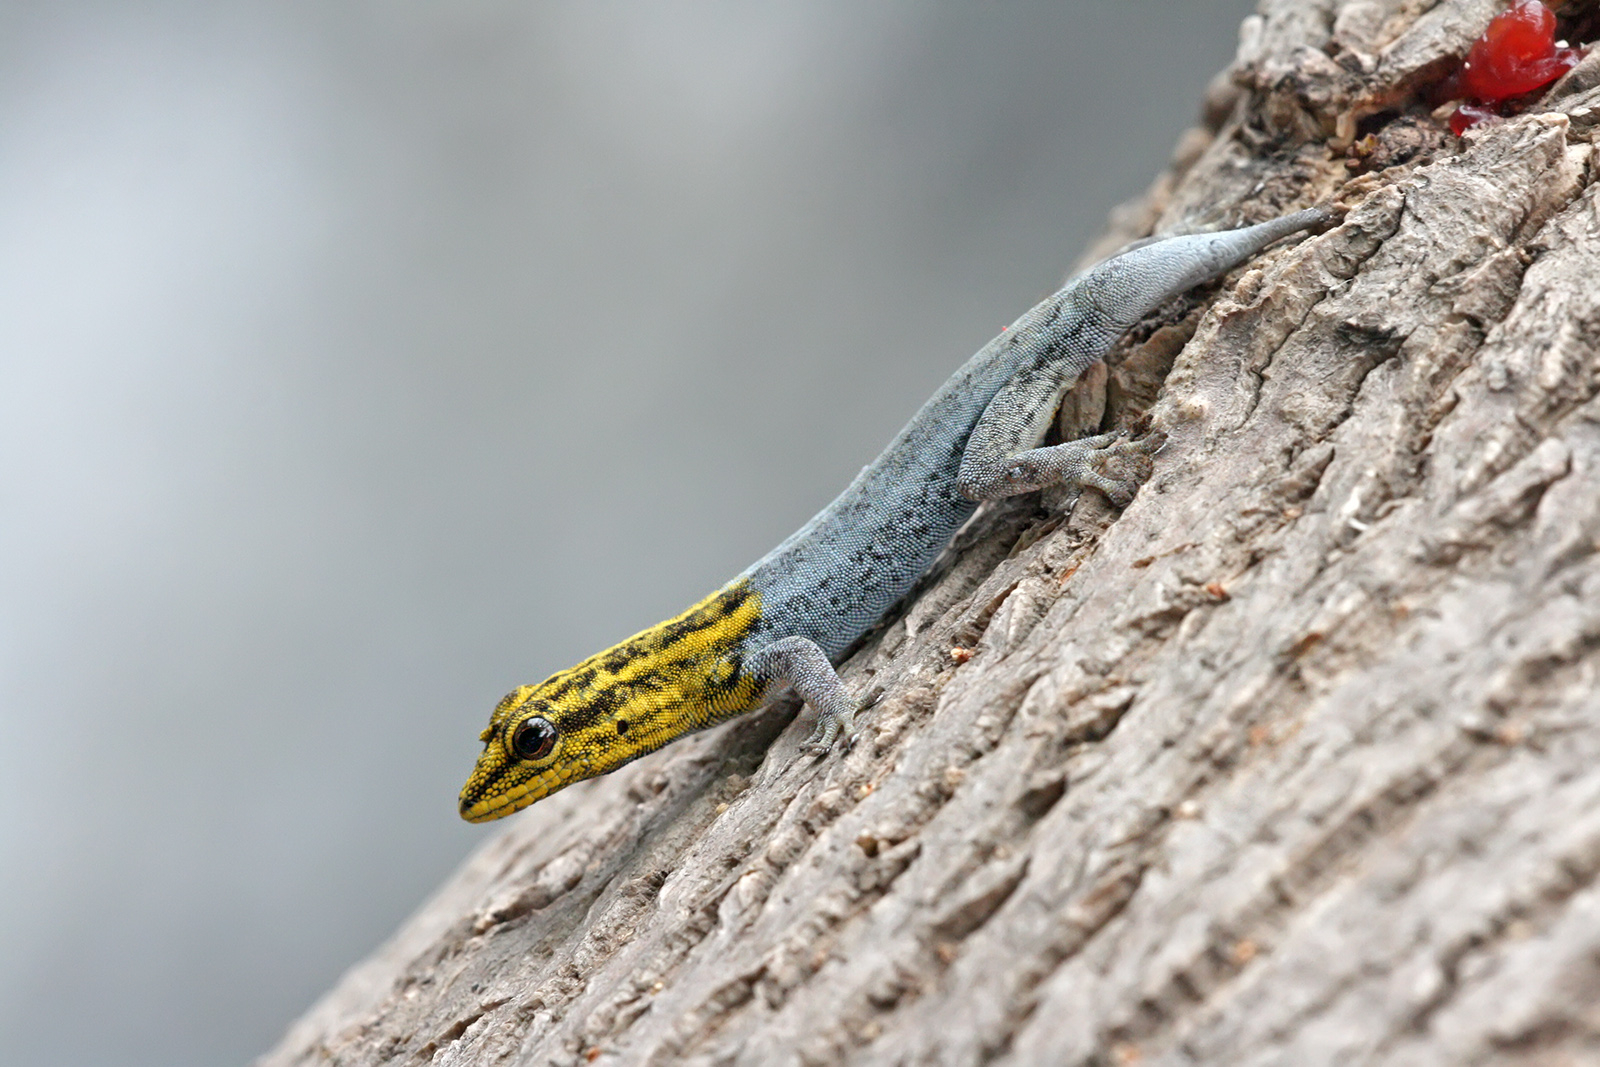 Reptiles: Dwarf Yellow-headed gecko